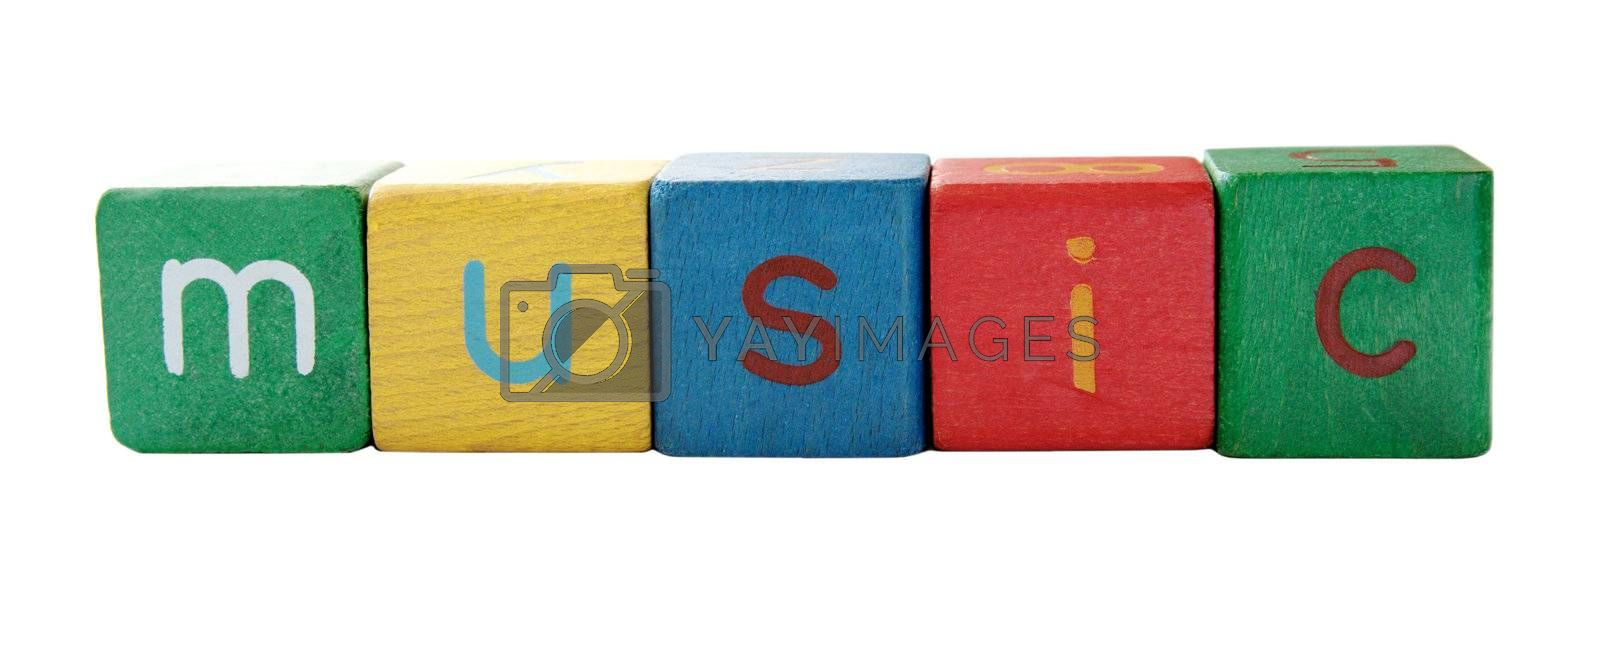 the word 'music' in colorful children's block letters